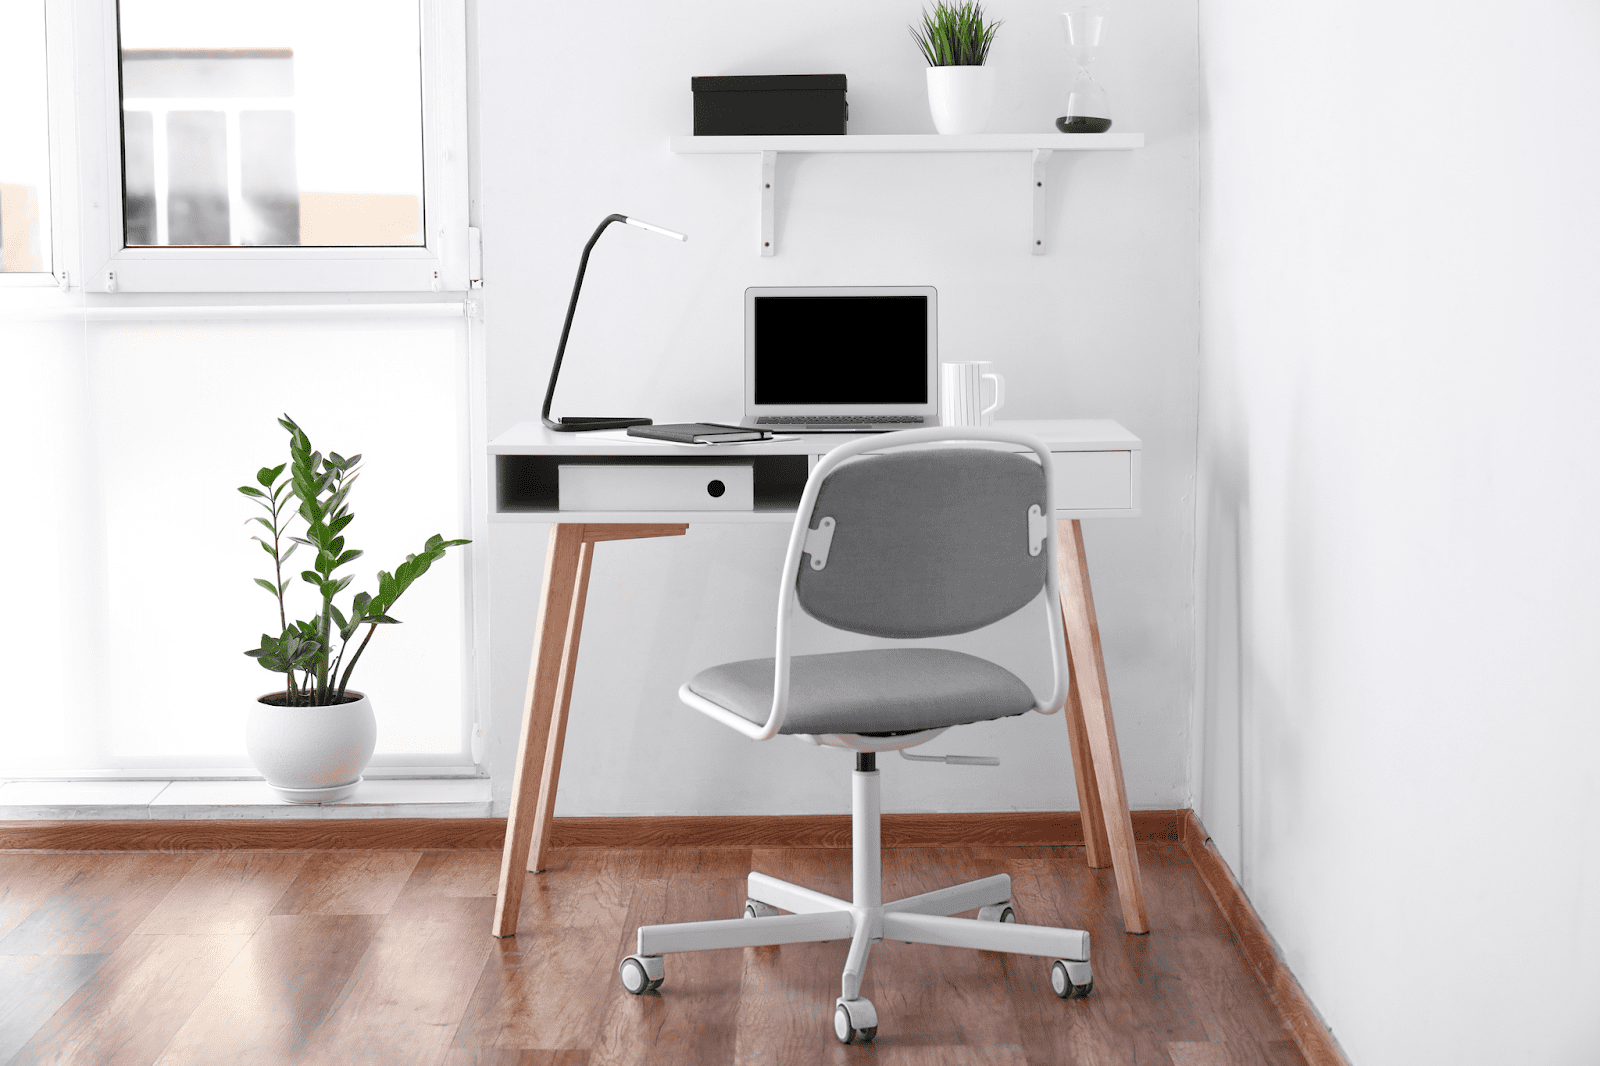 Small home office ideas: Minimalist white room with desk and chair